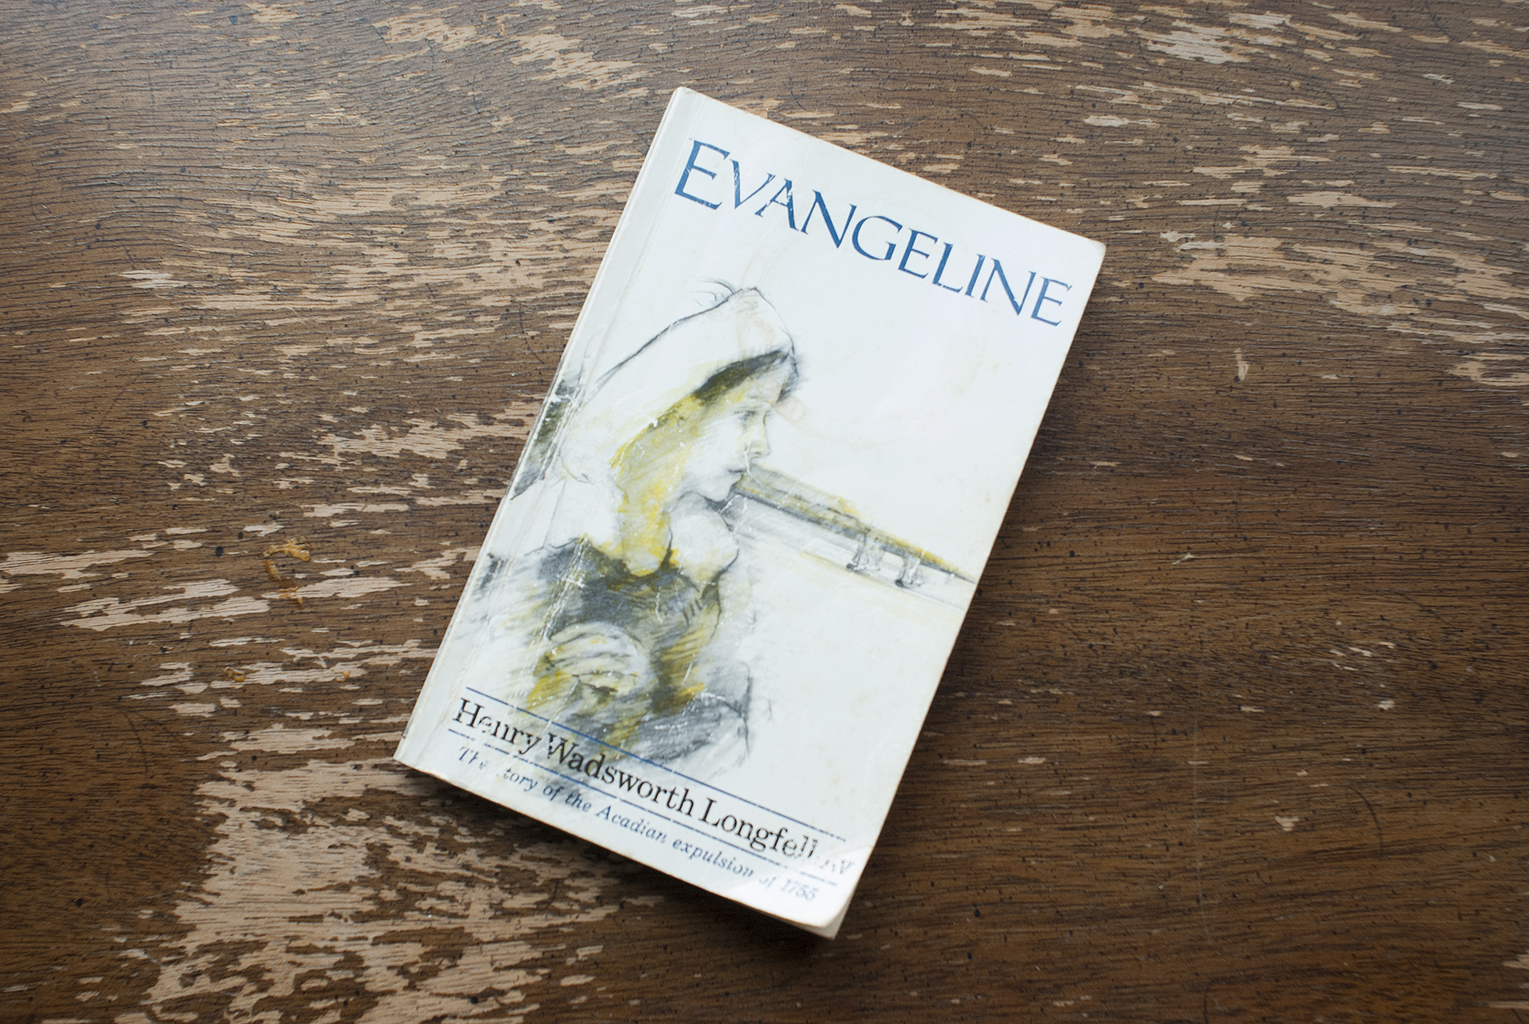 Evangeline, By Henry Wadsworth Longfellow.